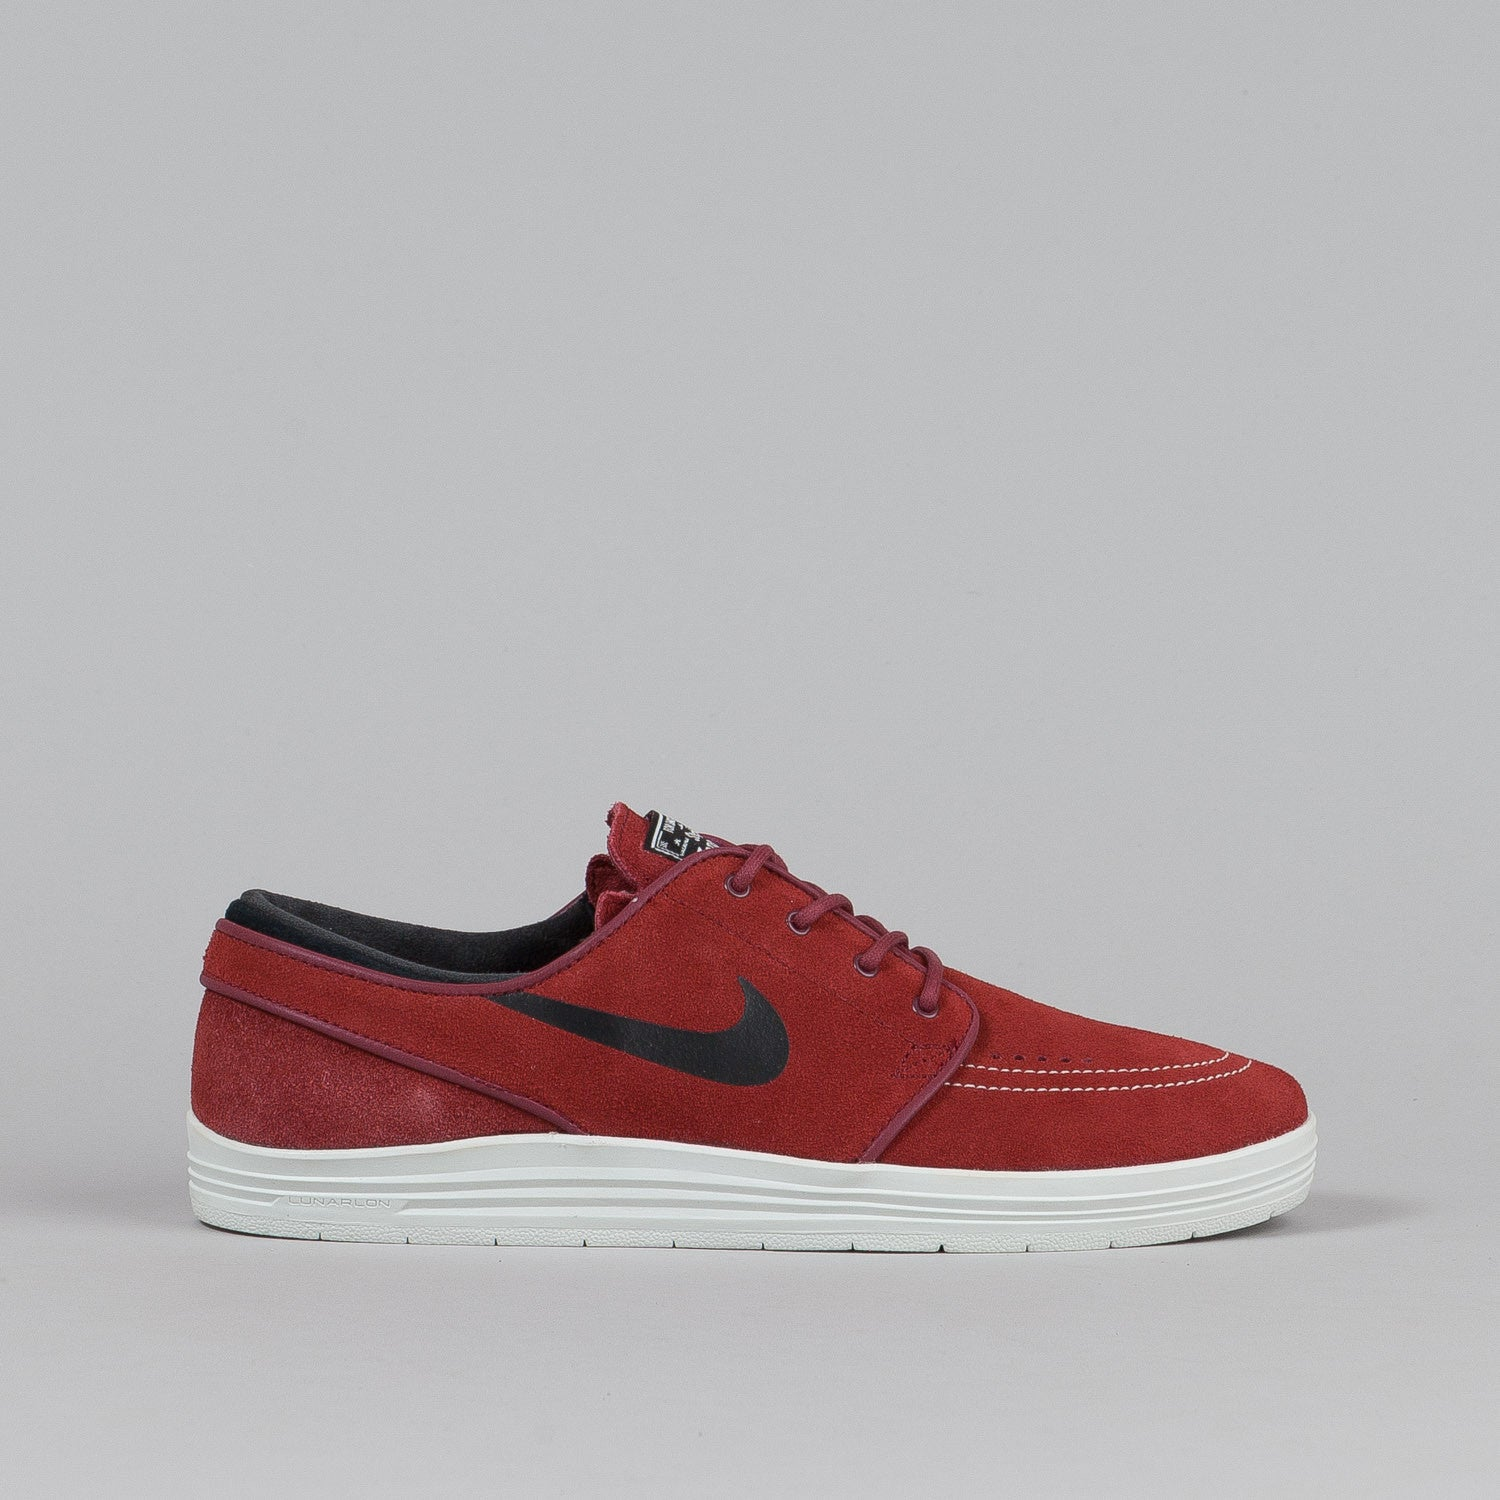 Nike SB Lunar Stefan Janoski Team Red/Black